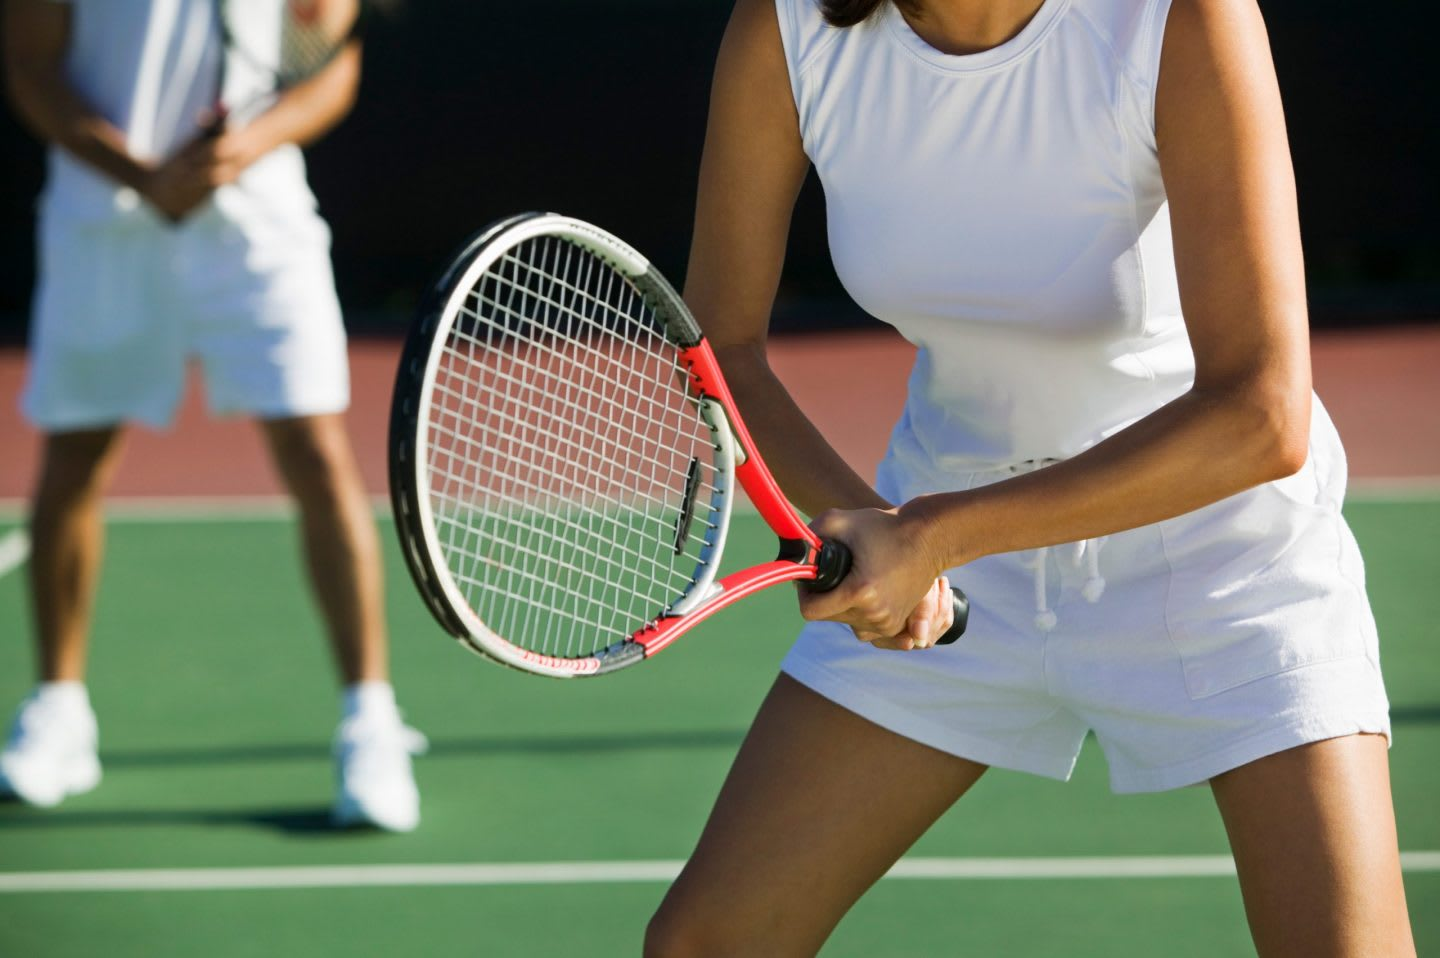 Woman wearing tennis whites holding a tennis racket during a doubles game, sports, sport, tennis, players